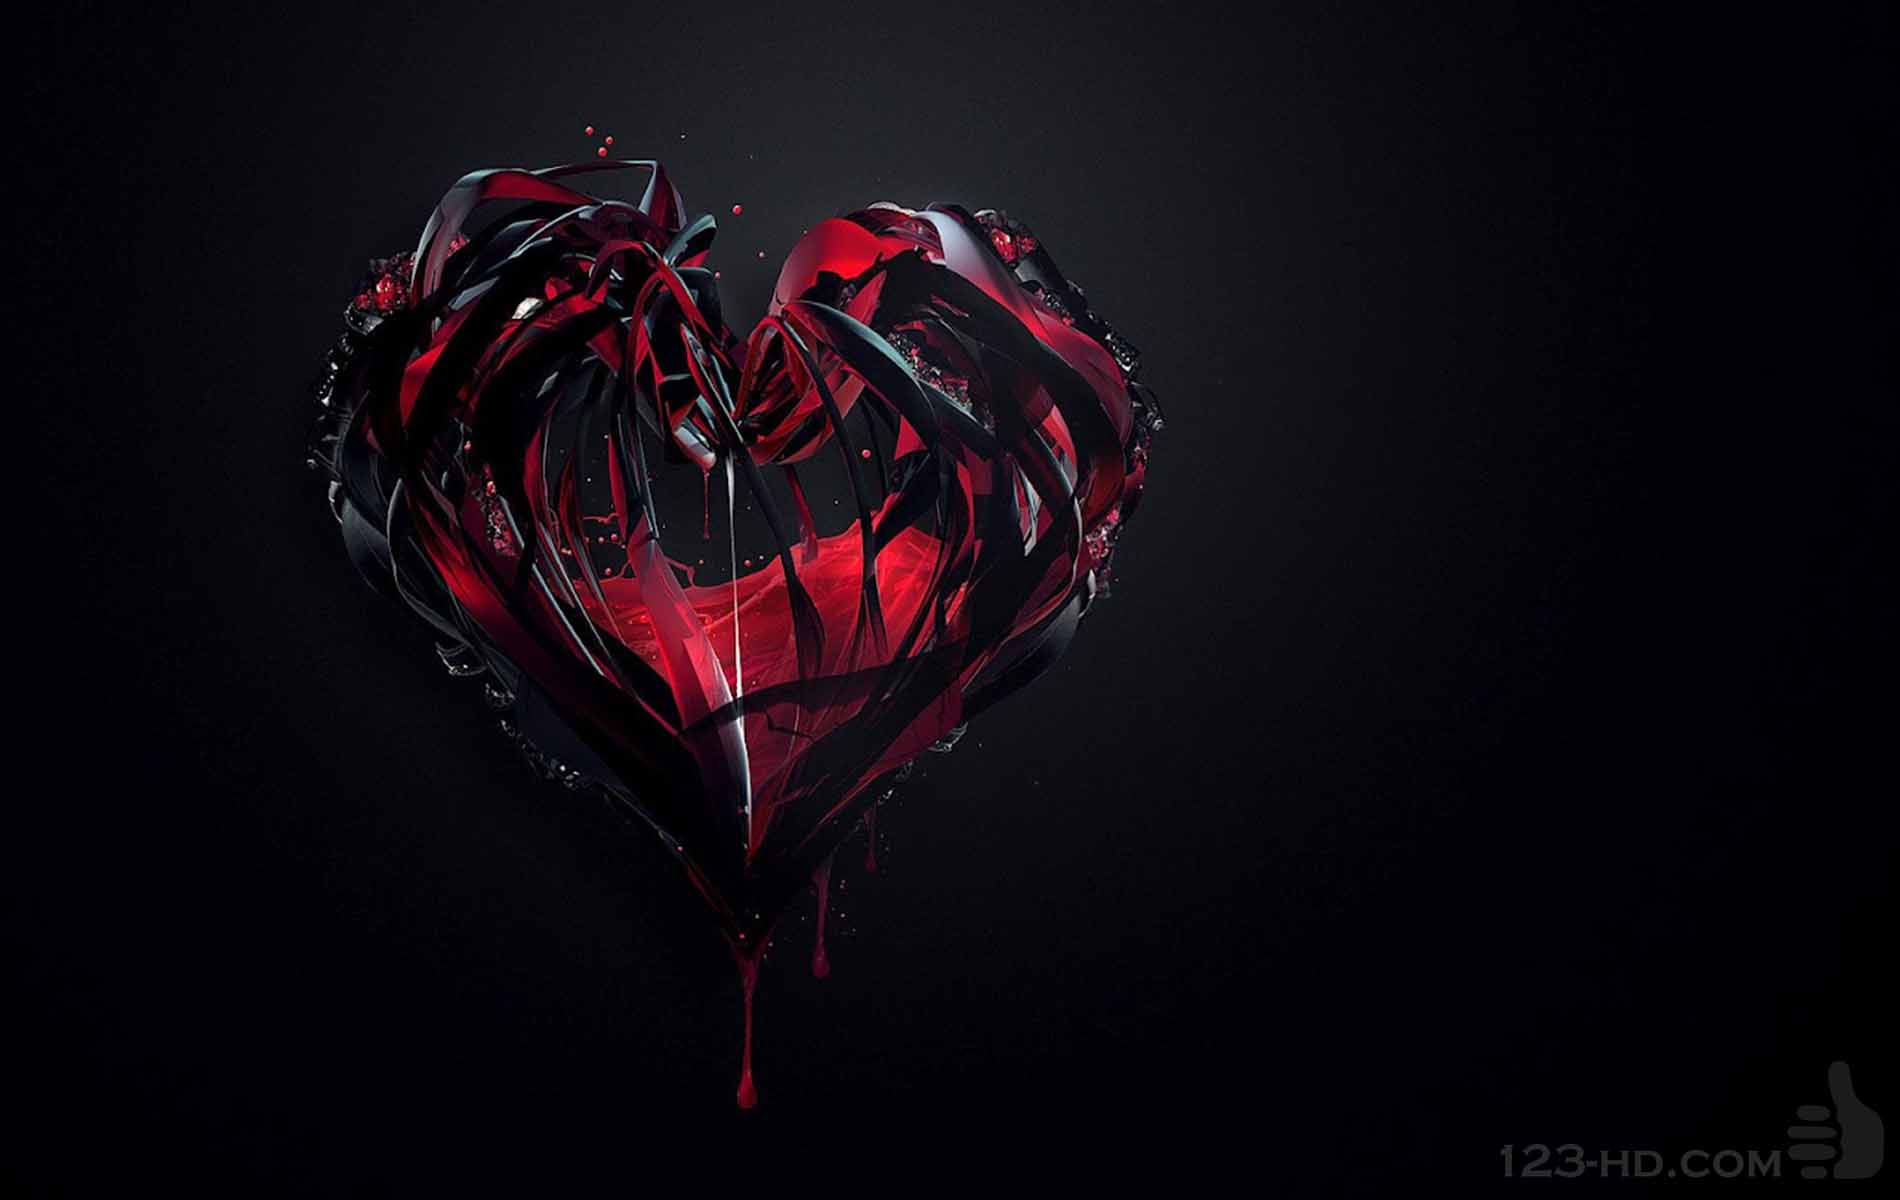 Black & Red Heart